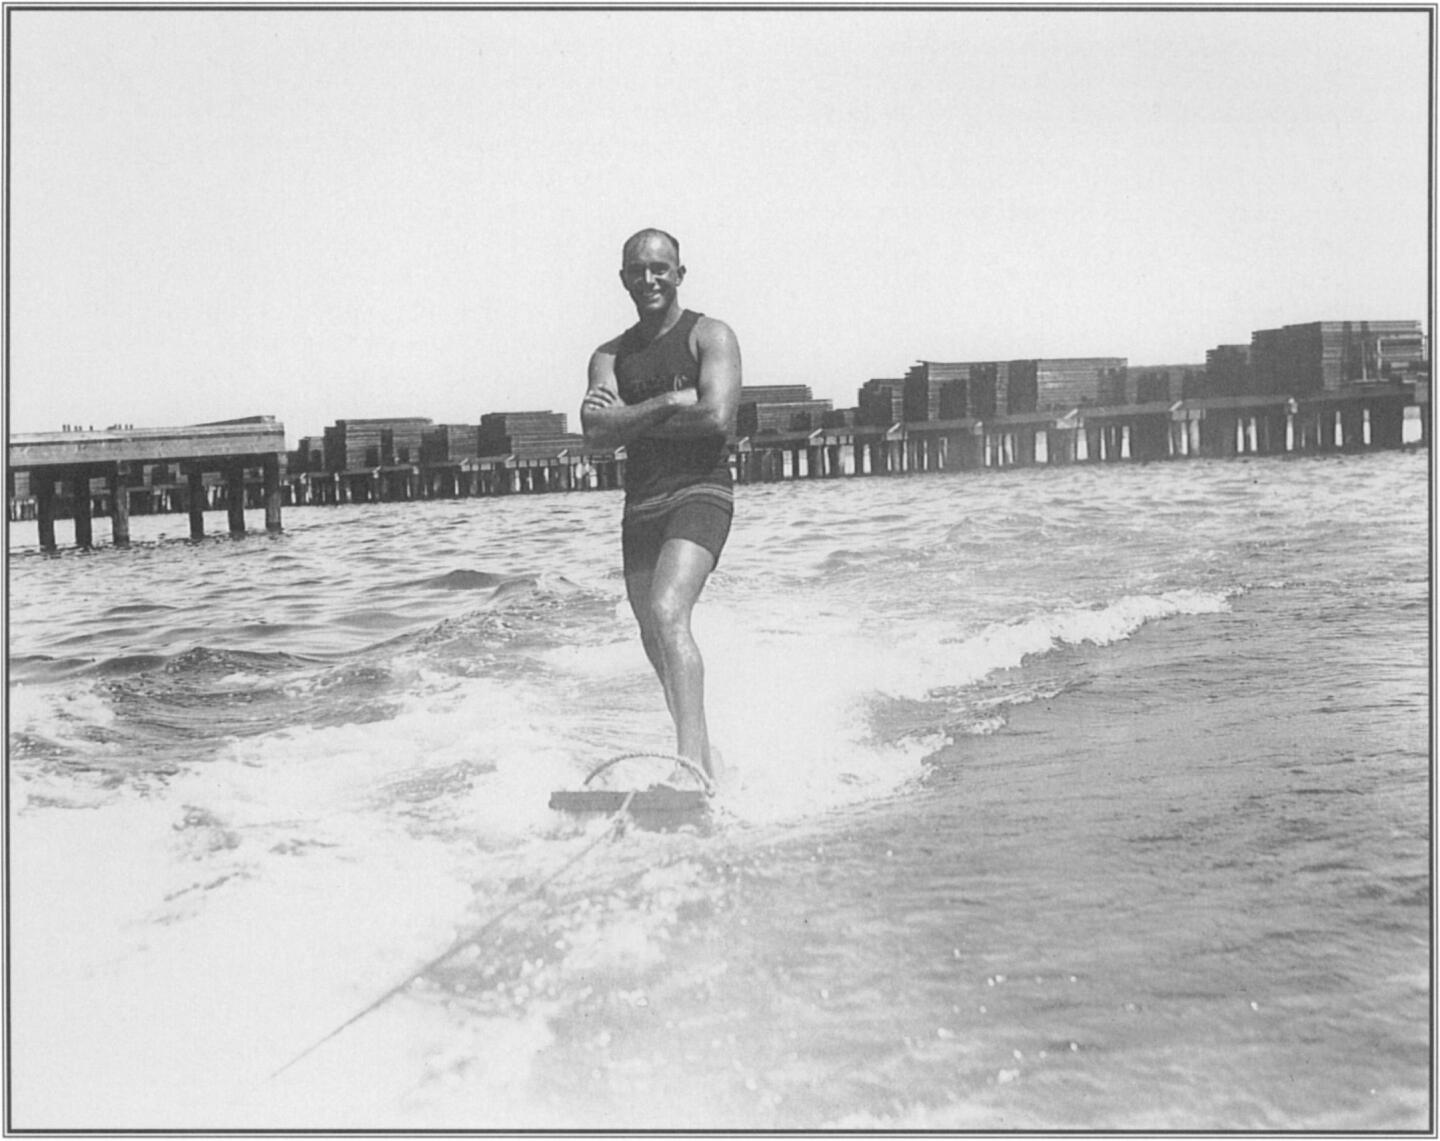 """Looking like """"a brown Mercury (whose) heels are winged,"""" as Jack London had called  him  years before in  Hawaii, George Freeth  aquaplaned  with  apparent  effortlessness in September 1916 in  San Diego."""